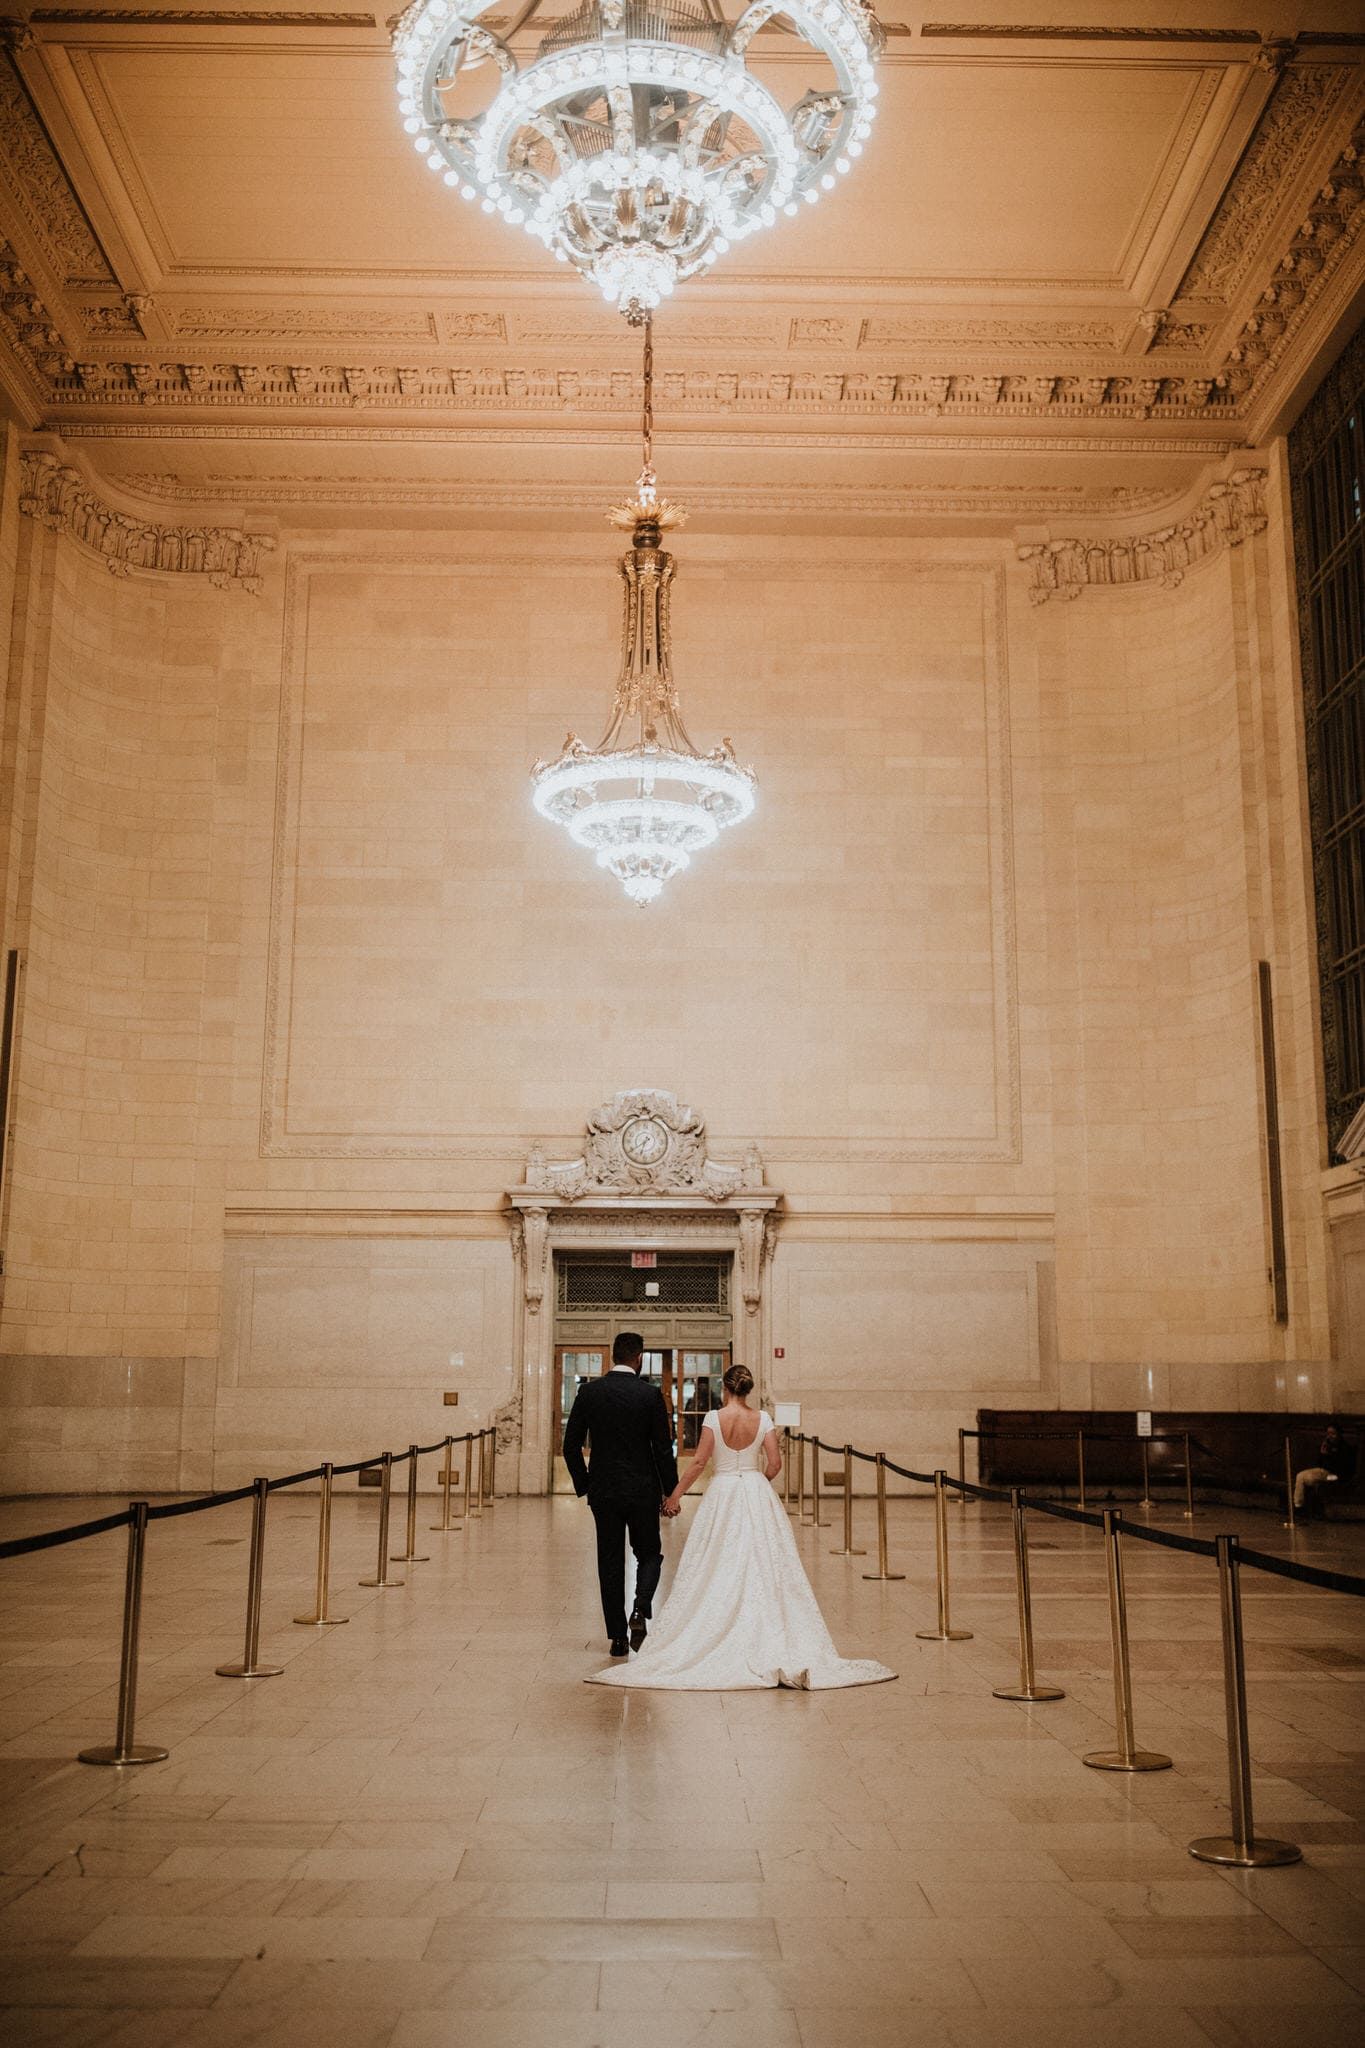 The bride and groom under the chandeliers in Grand Central Terminal, New York. Wedding Photographer Brent Calis.